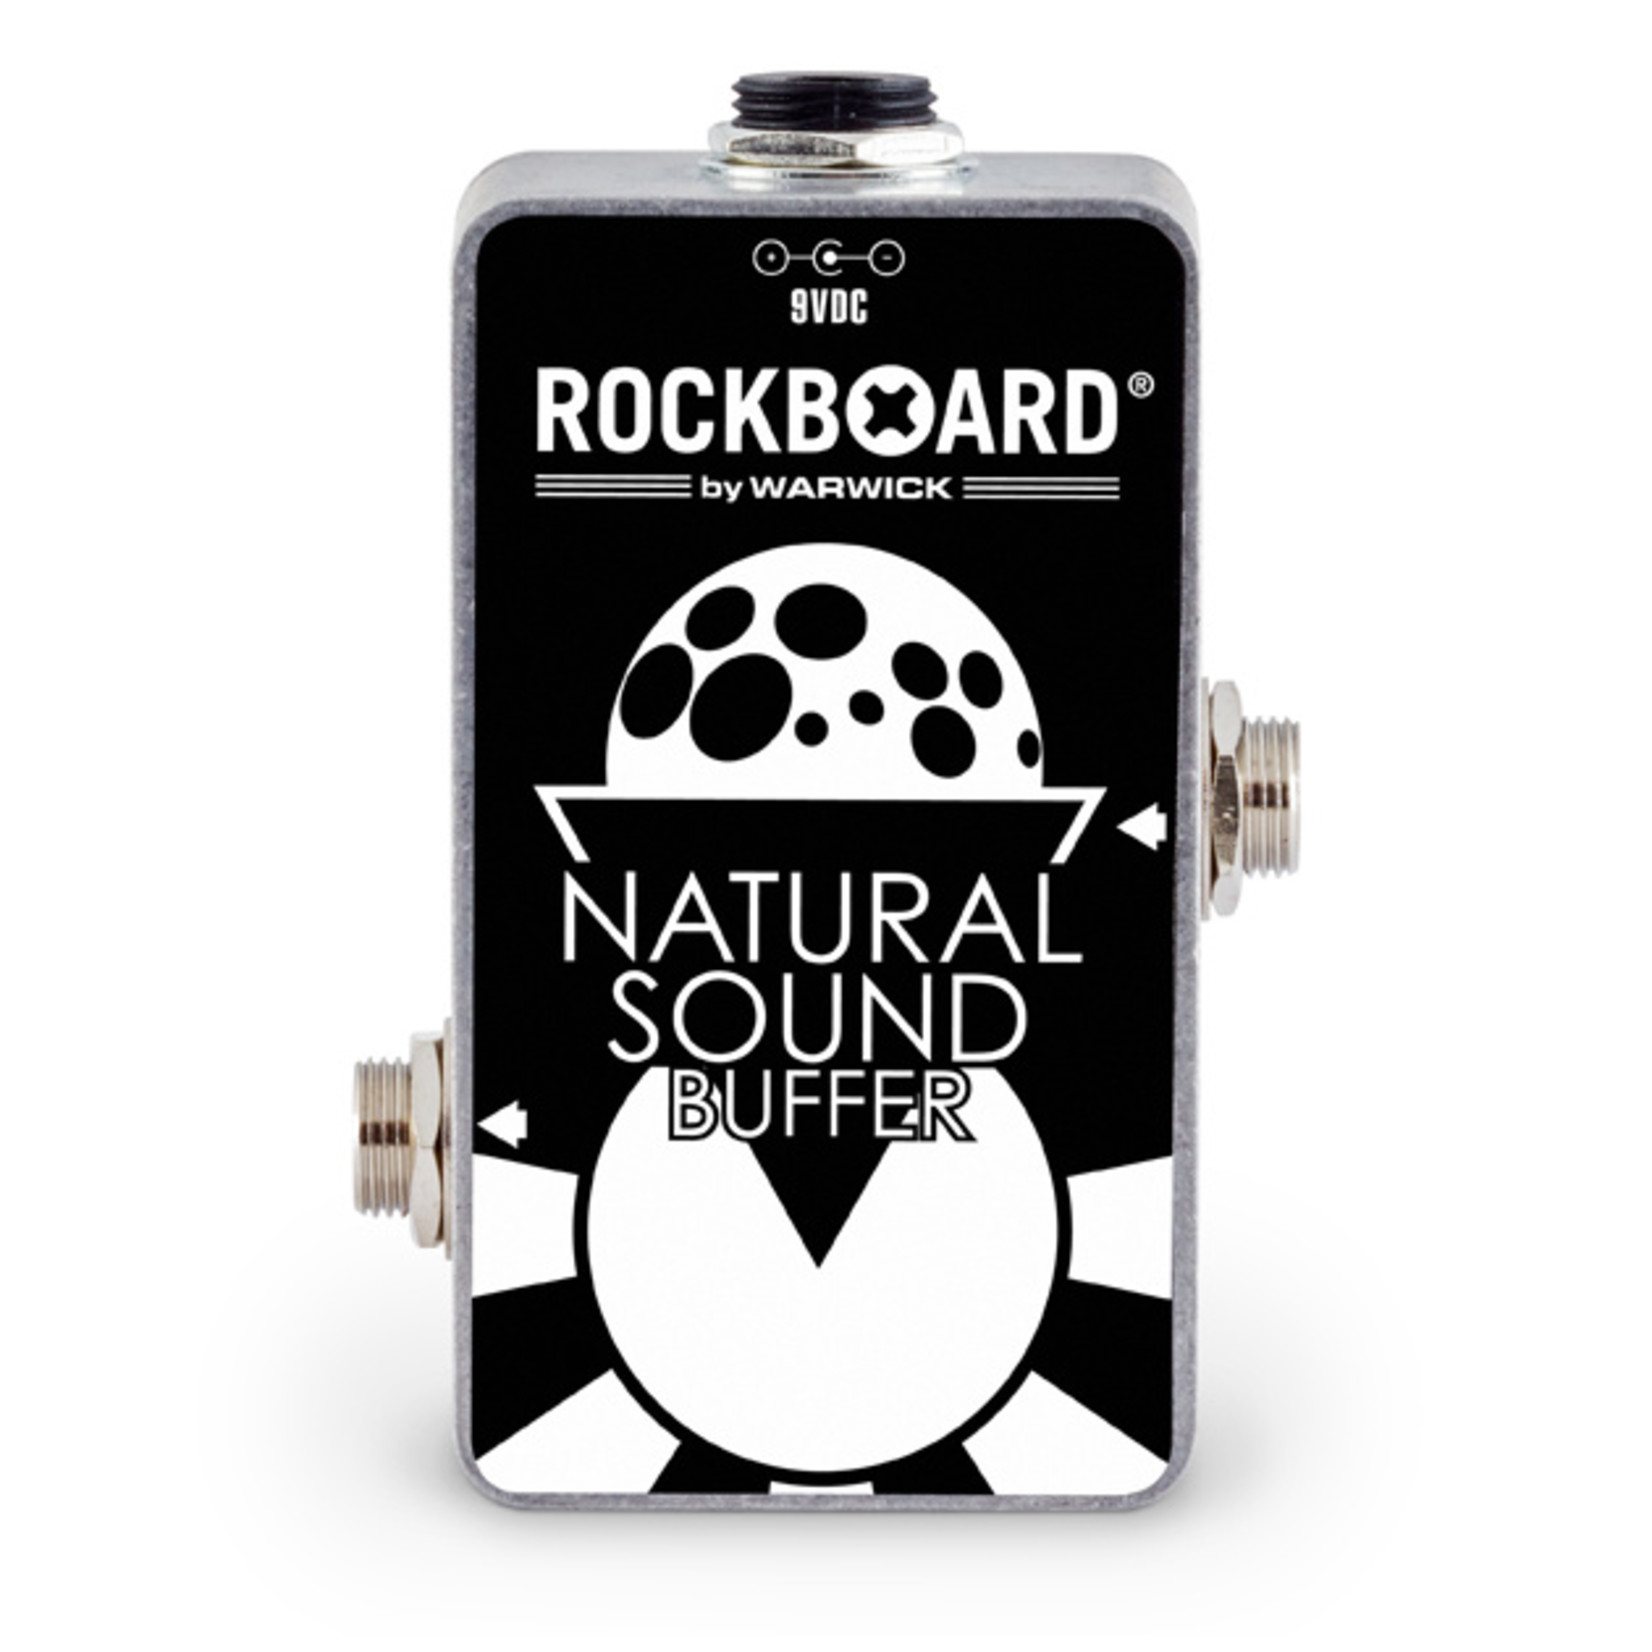 Rockboard Rockboard Natural Sound Buffer (prevents signal loss in effects chains and long cable runs)